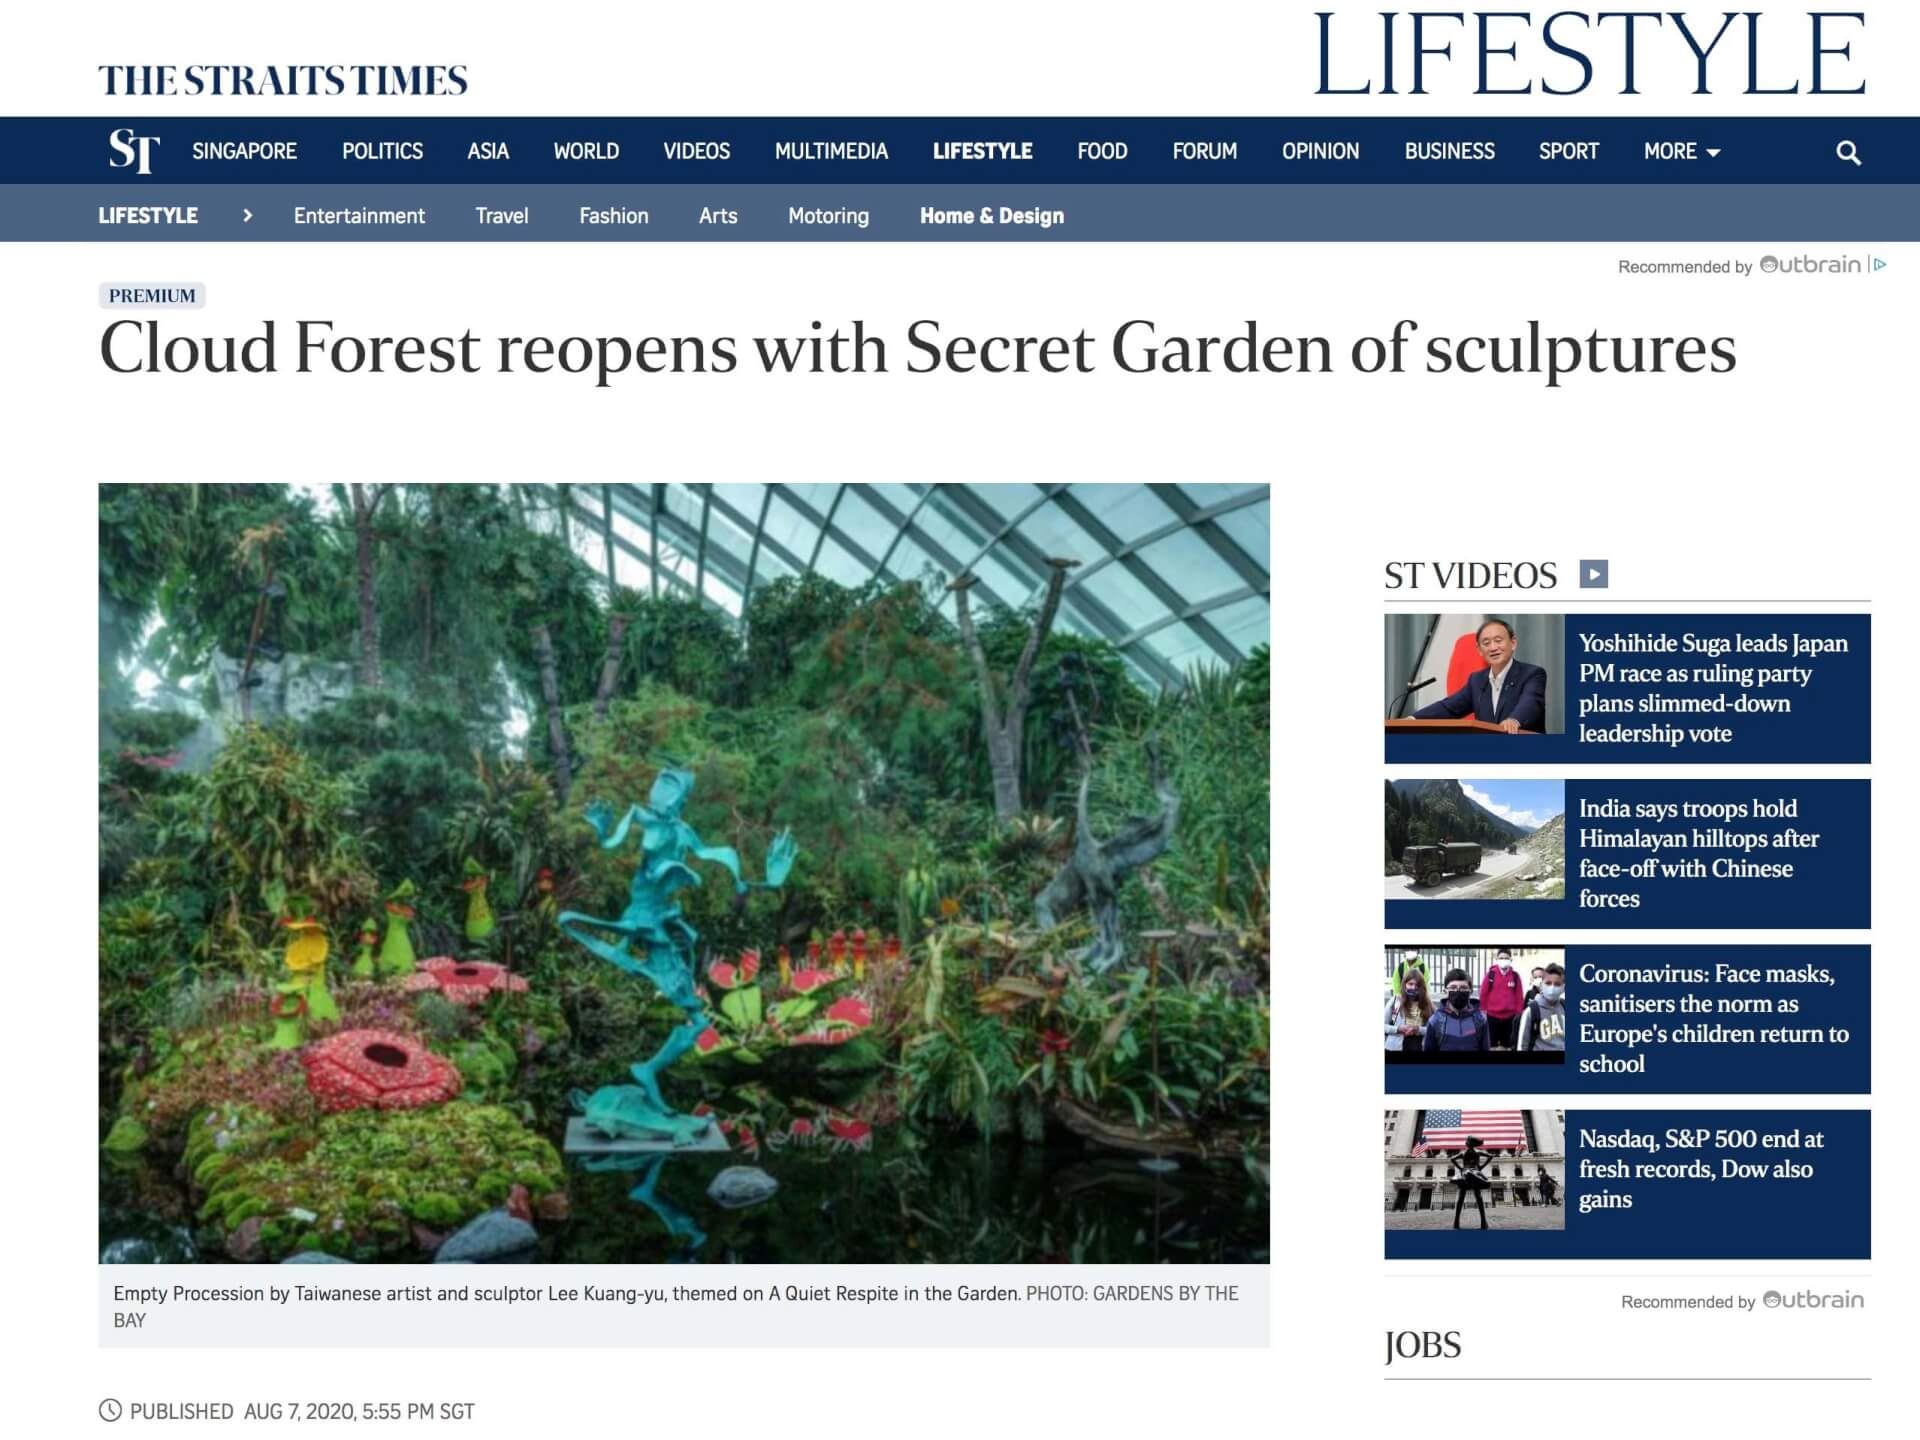 Cloud Forest reopens with Secret Garden of sculptures